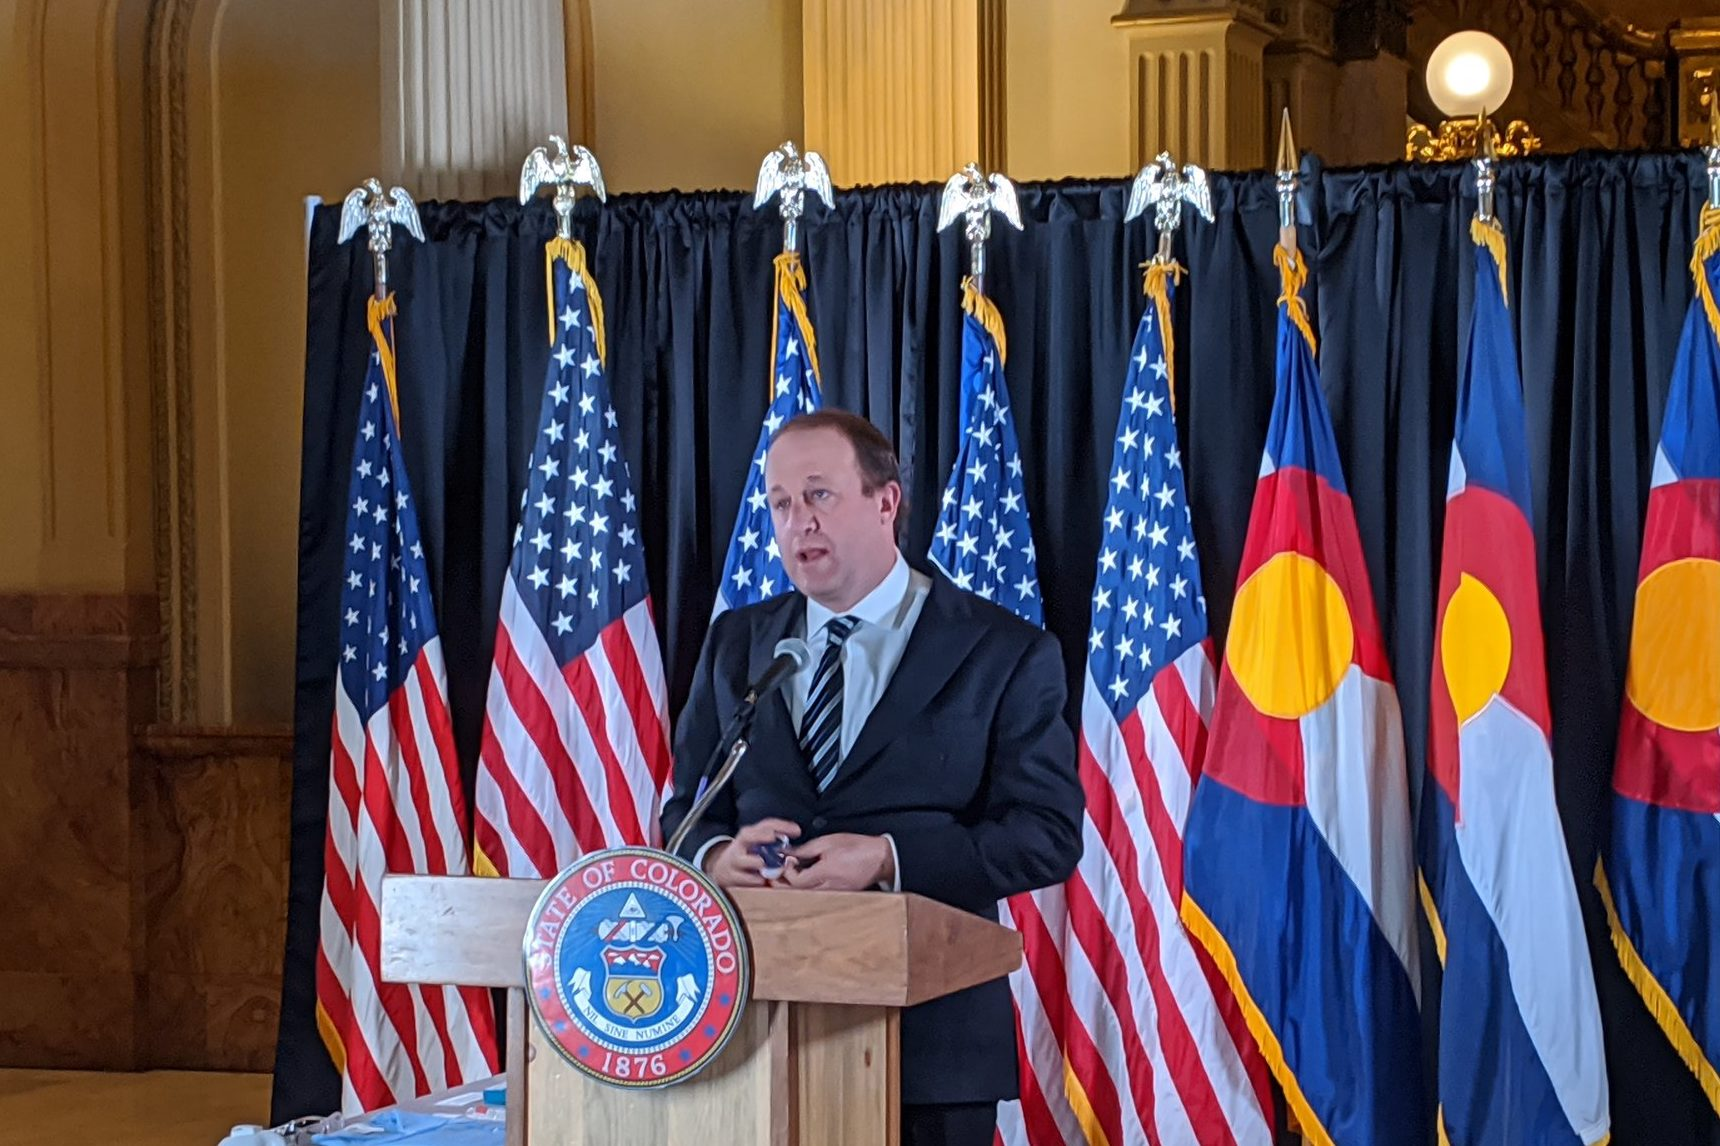 Gov. Jared Polis delivers an update on the Colorado response to the coronavirus from the west foyer of the state Capitol, April 29, 2020.